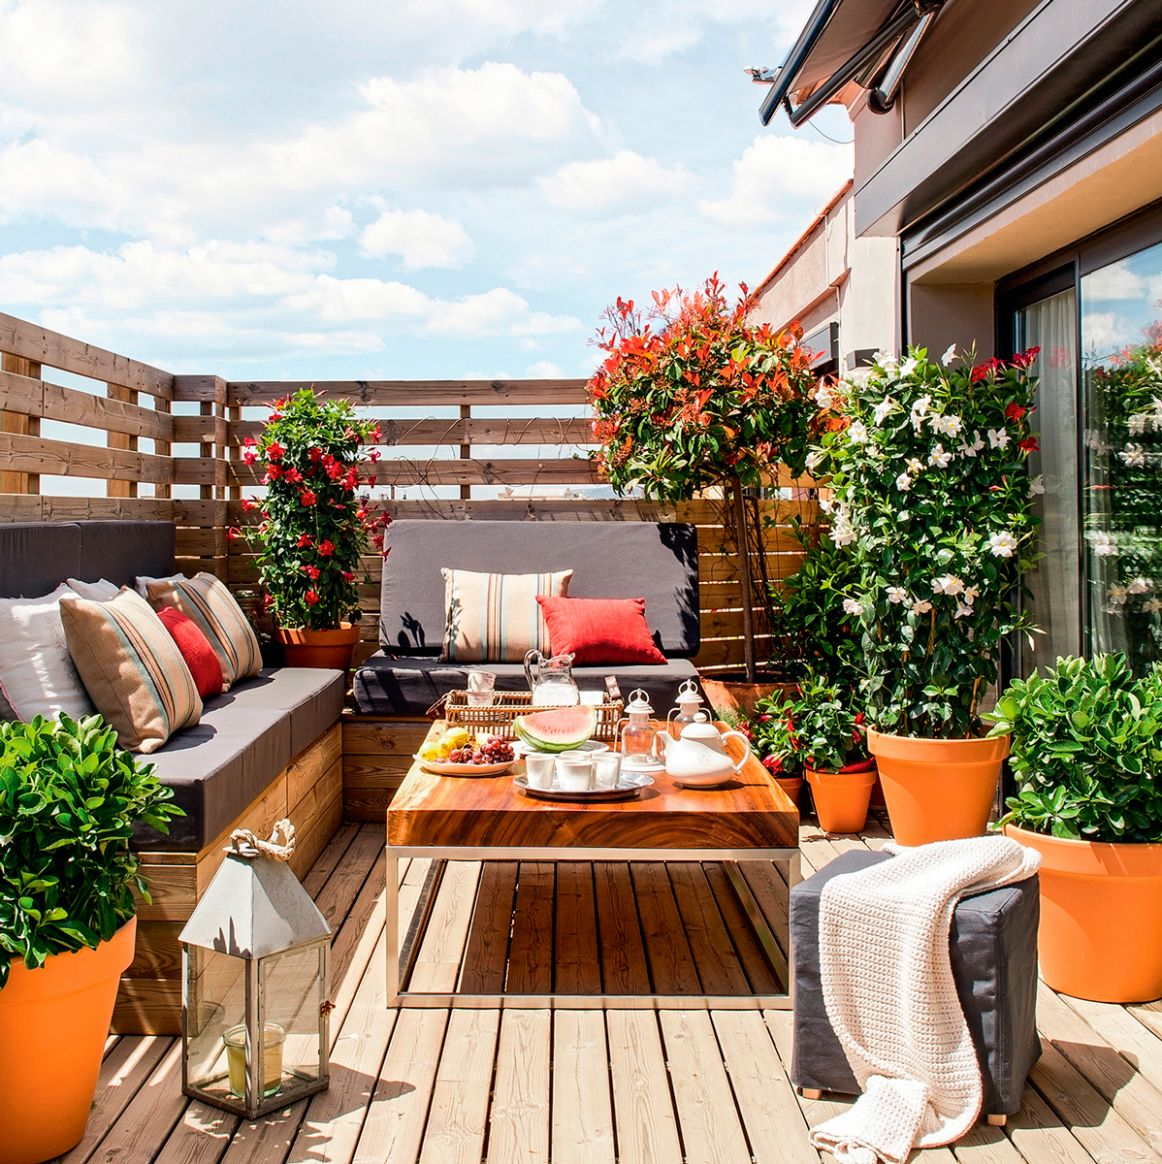 12 Small Balcony Ideas That Will Make You Fall in Love | Virginia ...